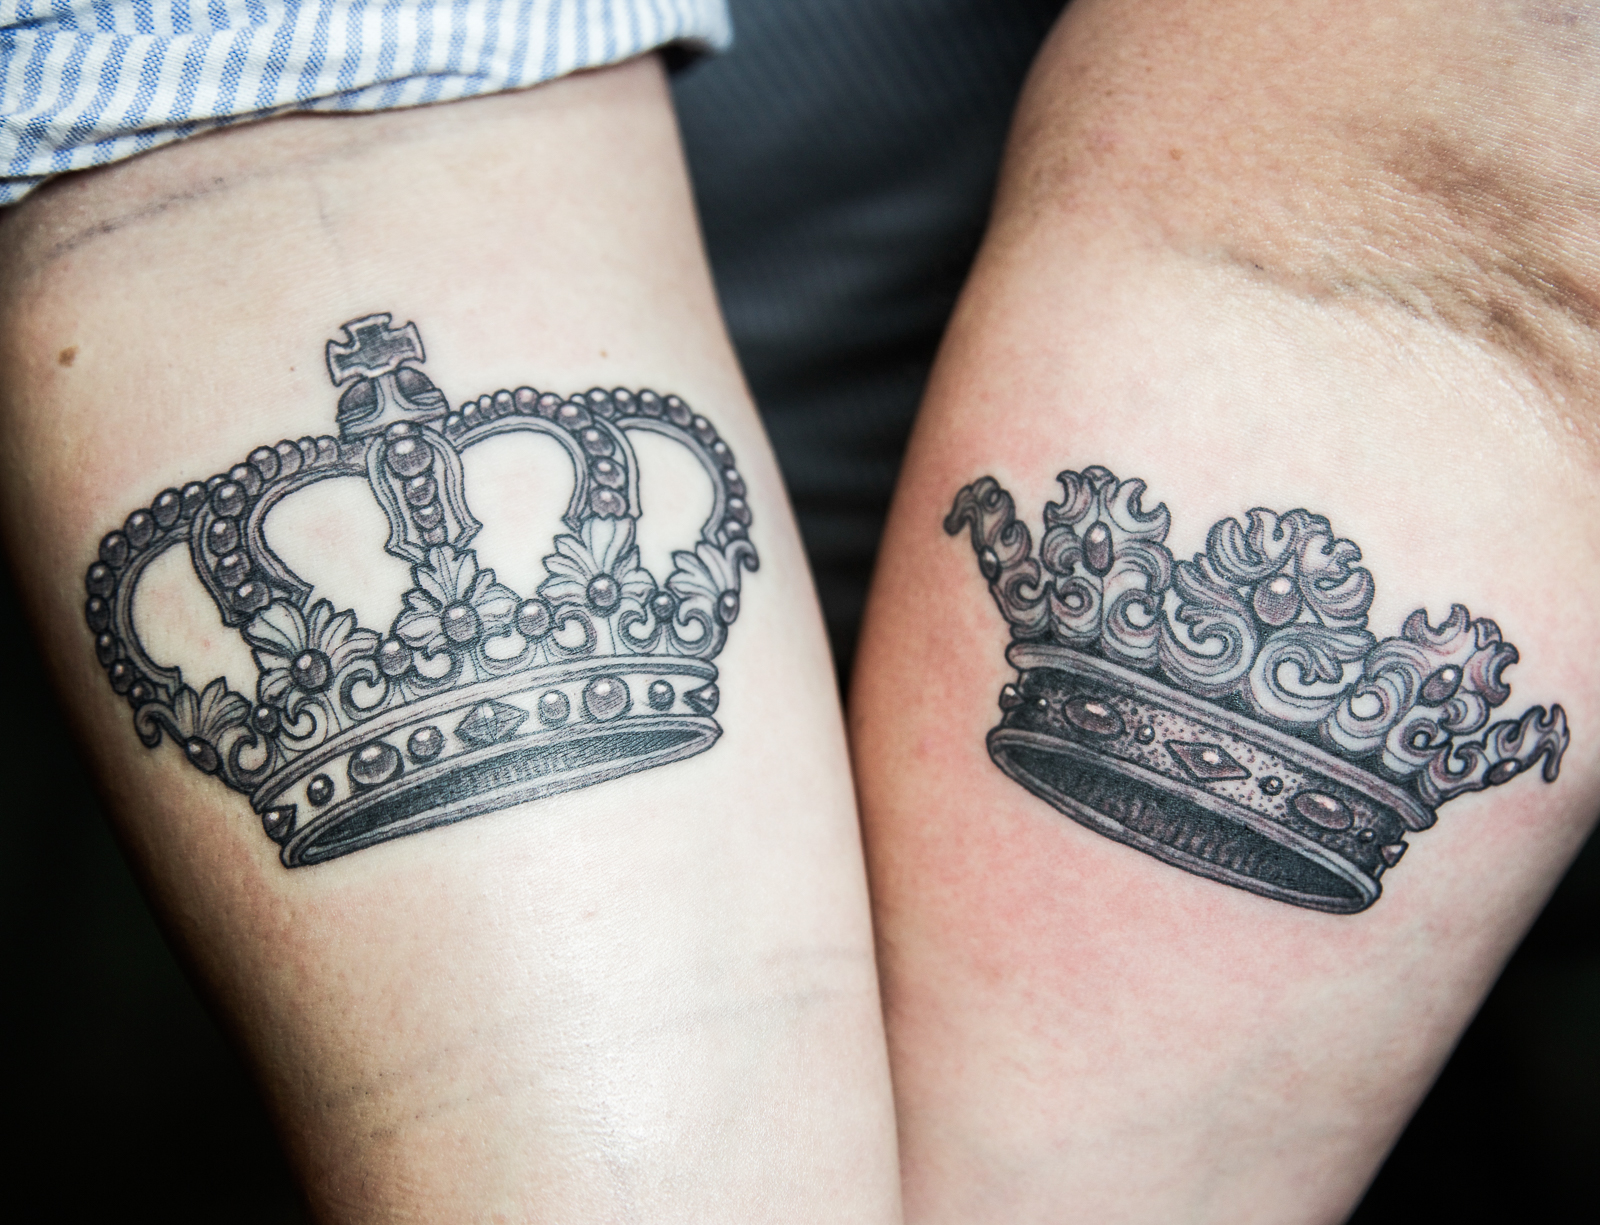 His and Hers Crown enrique bernal ejay tattoo.jpg